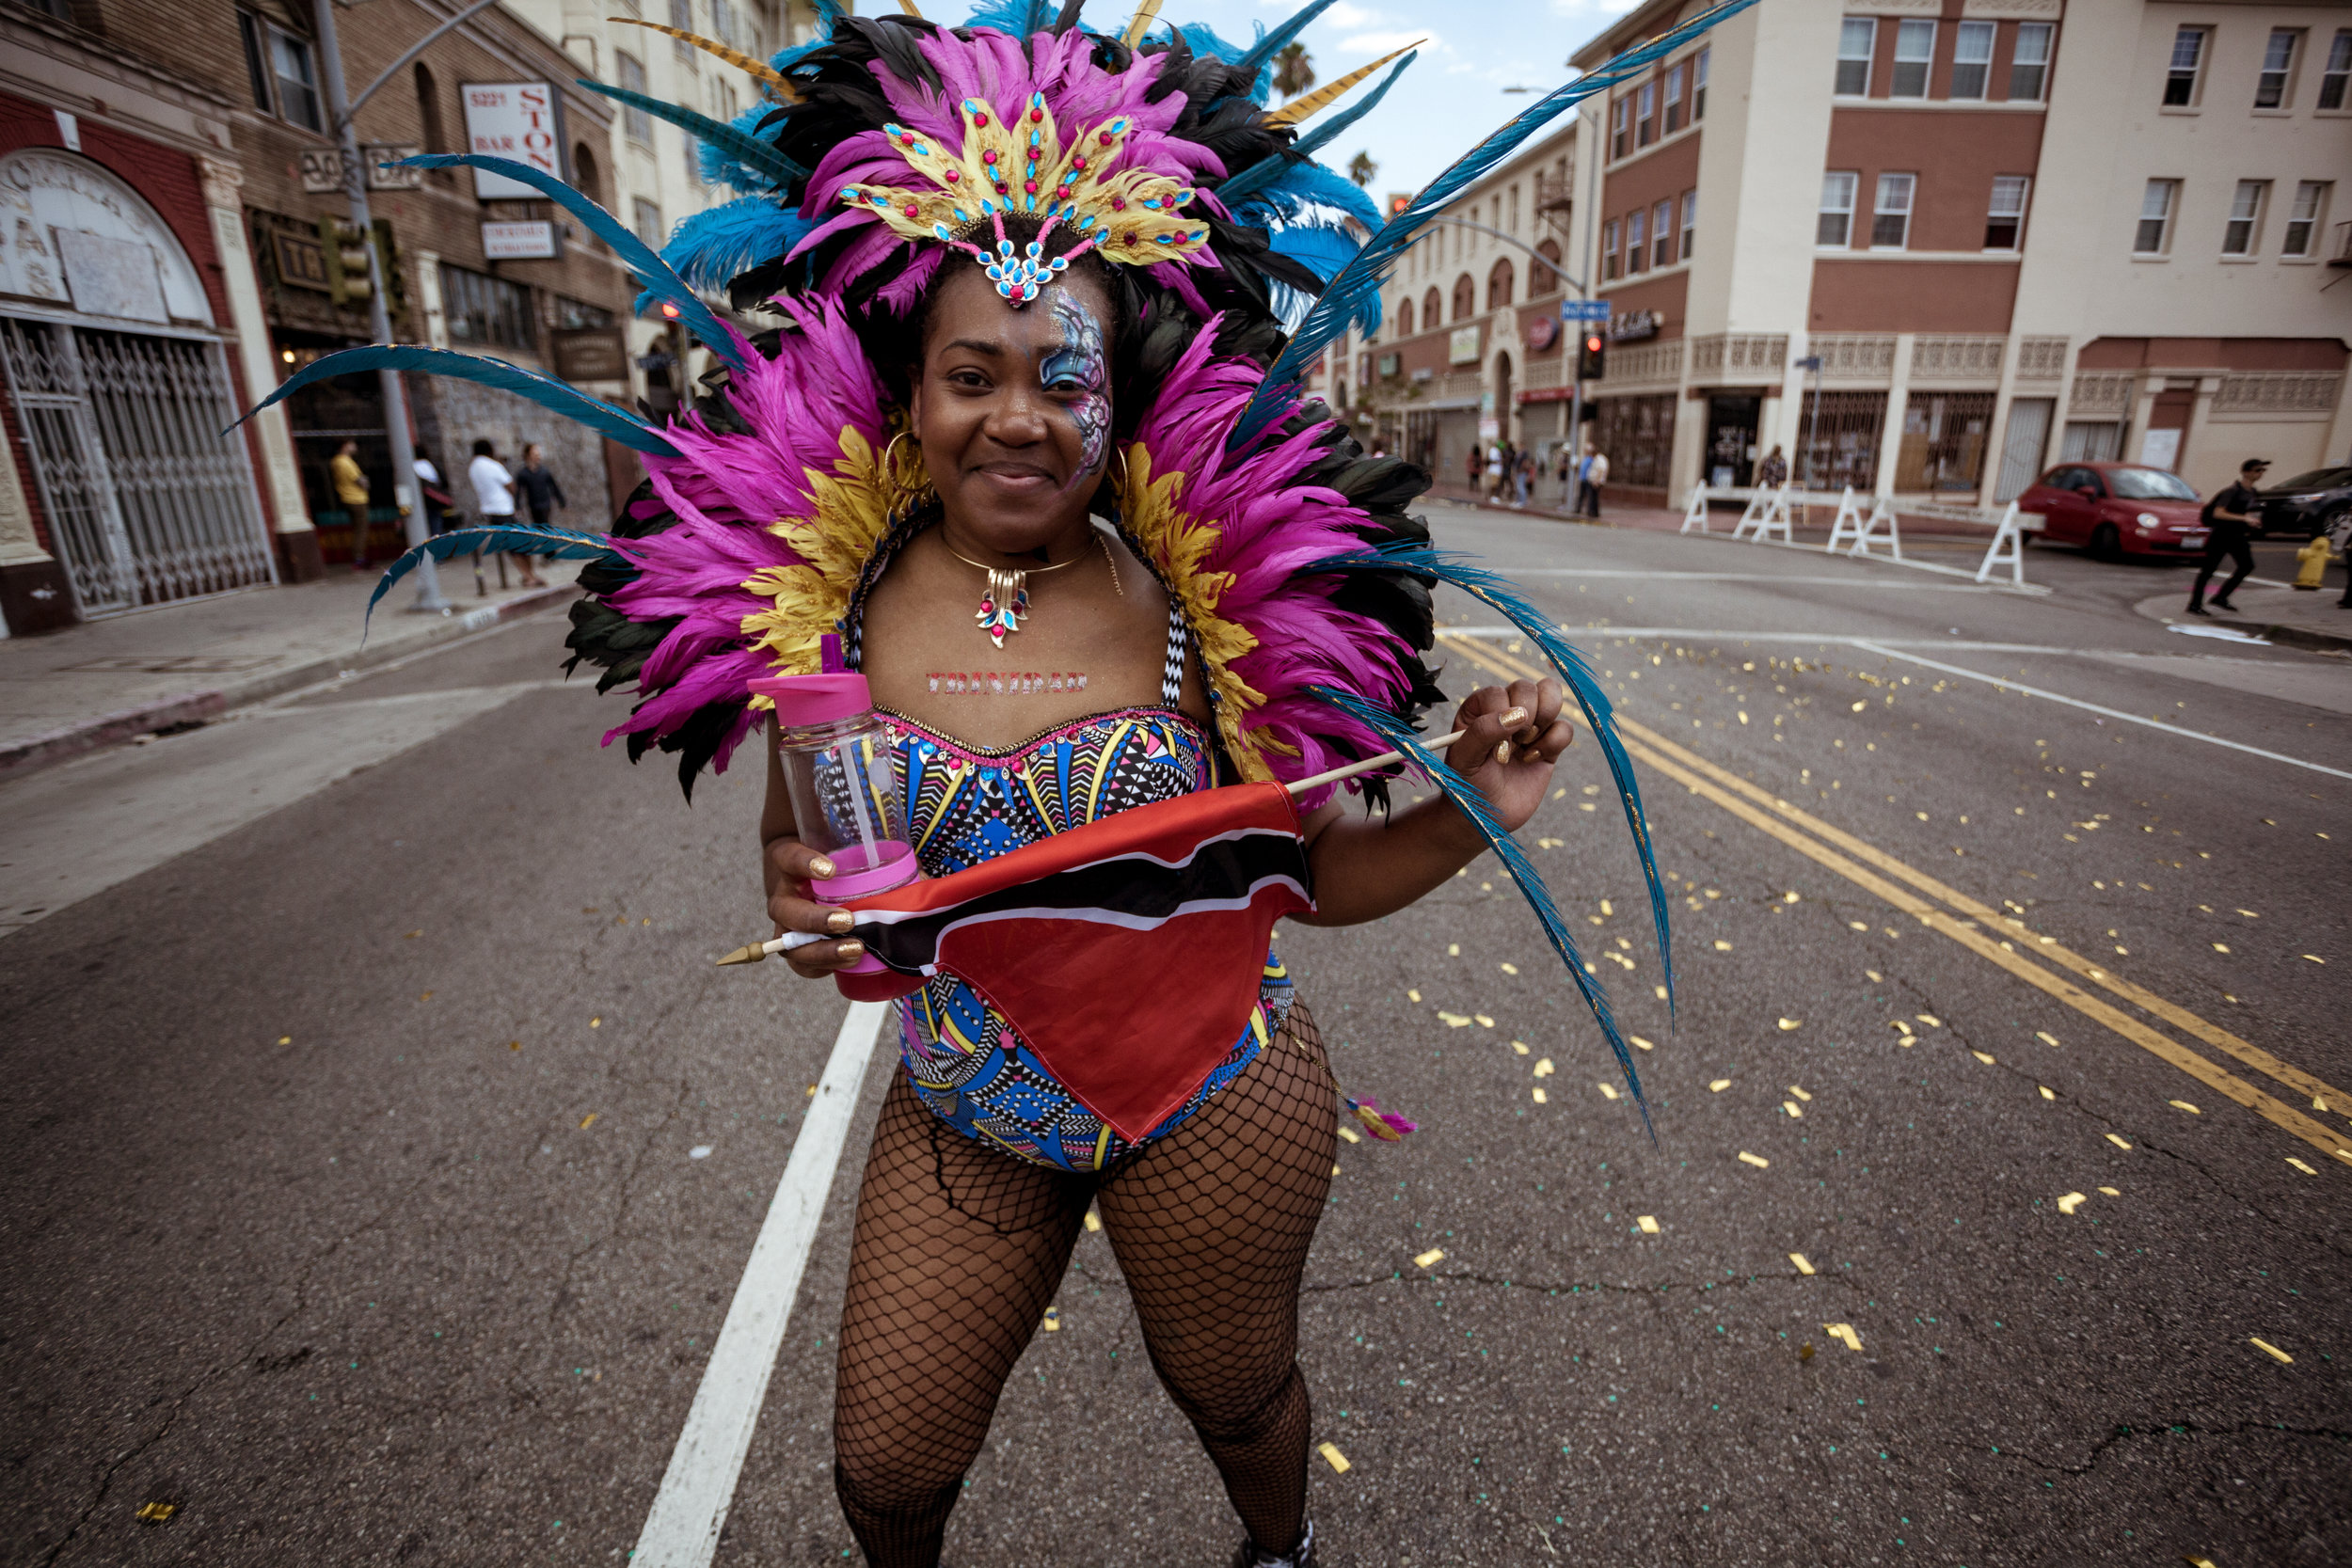 Chacon Images_Carnaval_Print-5770.jpg